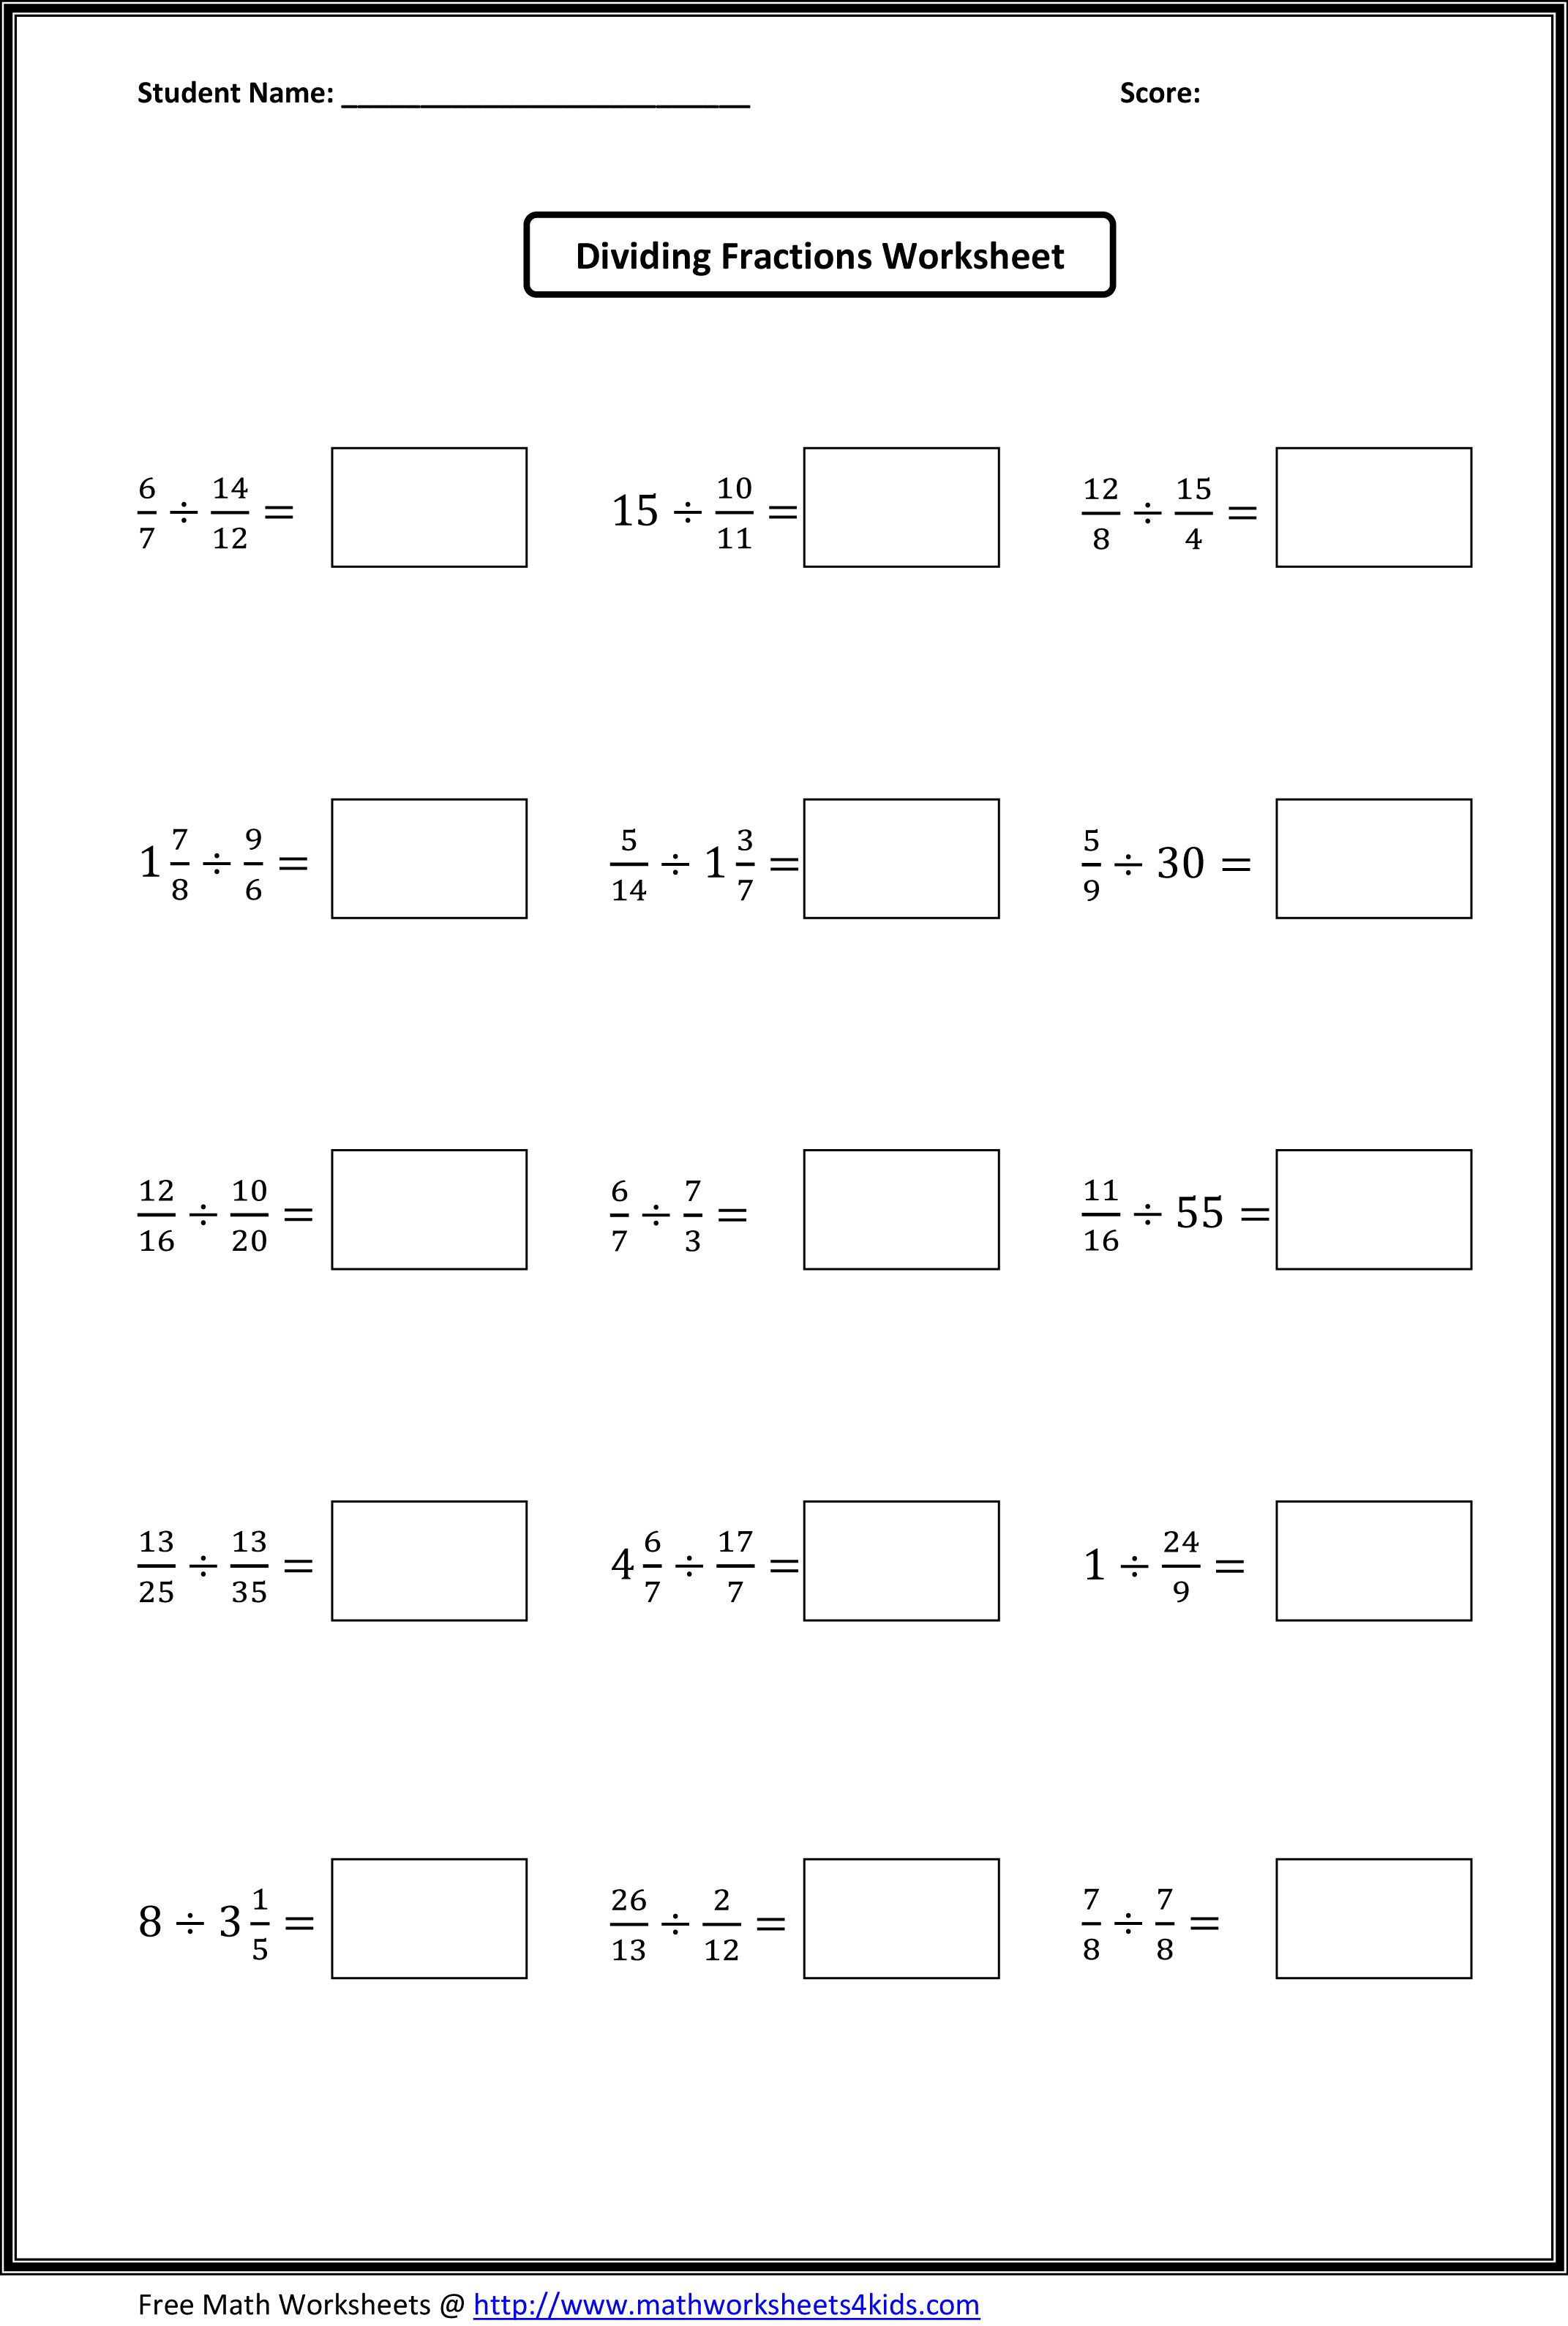 Dividing Fractions Worksheets | What's New | Fractions Worksheets | Fraction Worksheets 6Th Grade Printable